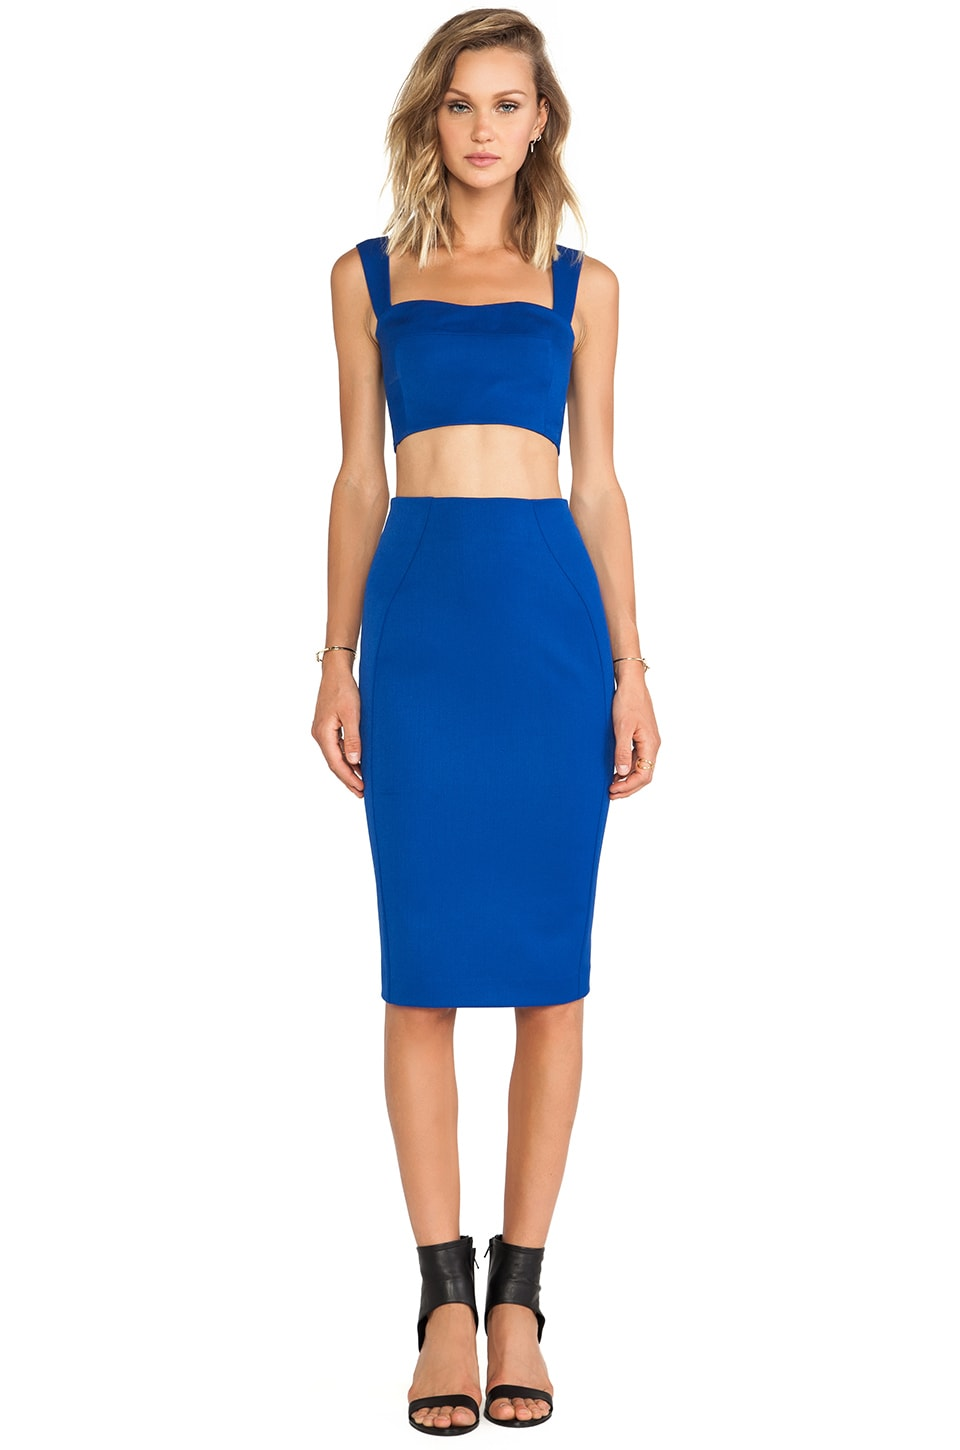 Black Halo Kayley 2 Piece Dress in Cobalt